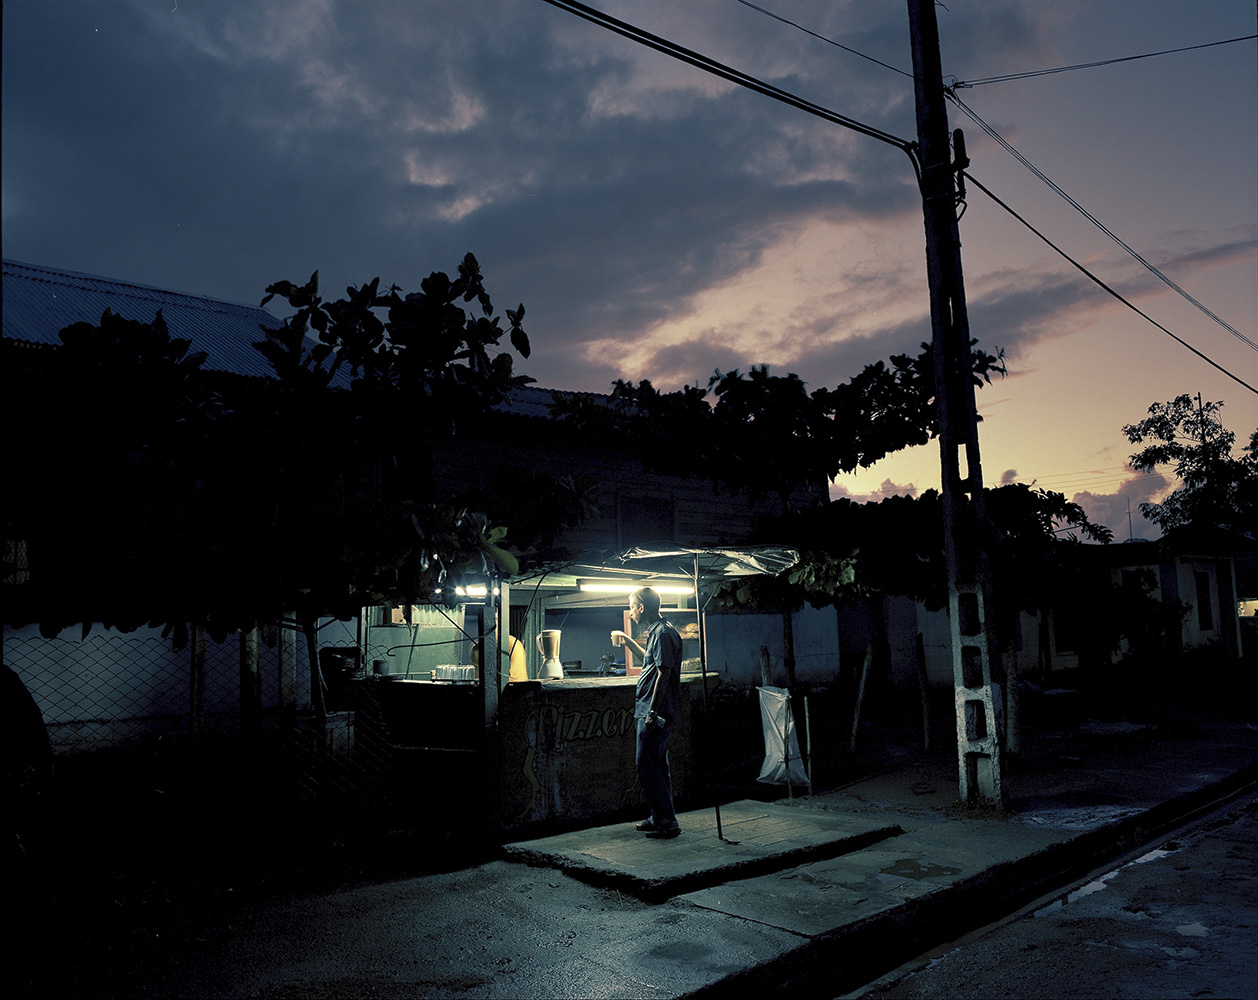 Private cafeteria at dusk in Manati town, some 460 miles east of Havana. You can find guava juice and home-made pizzas there all night long.